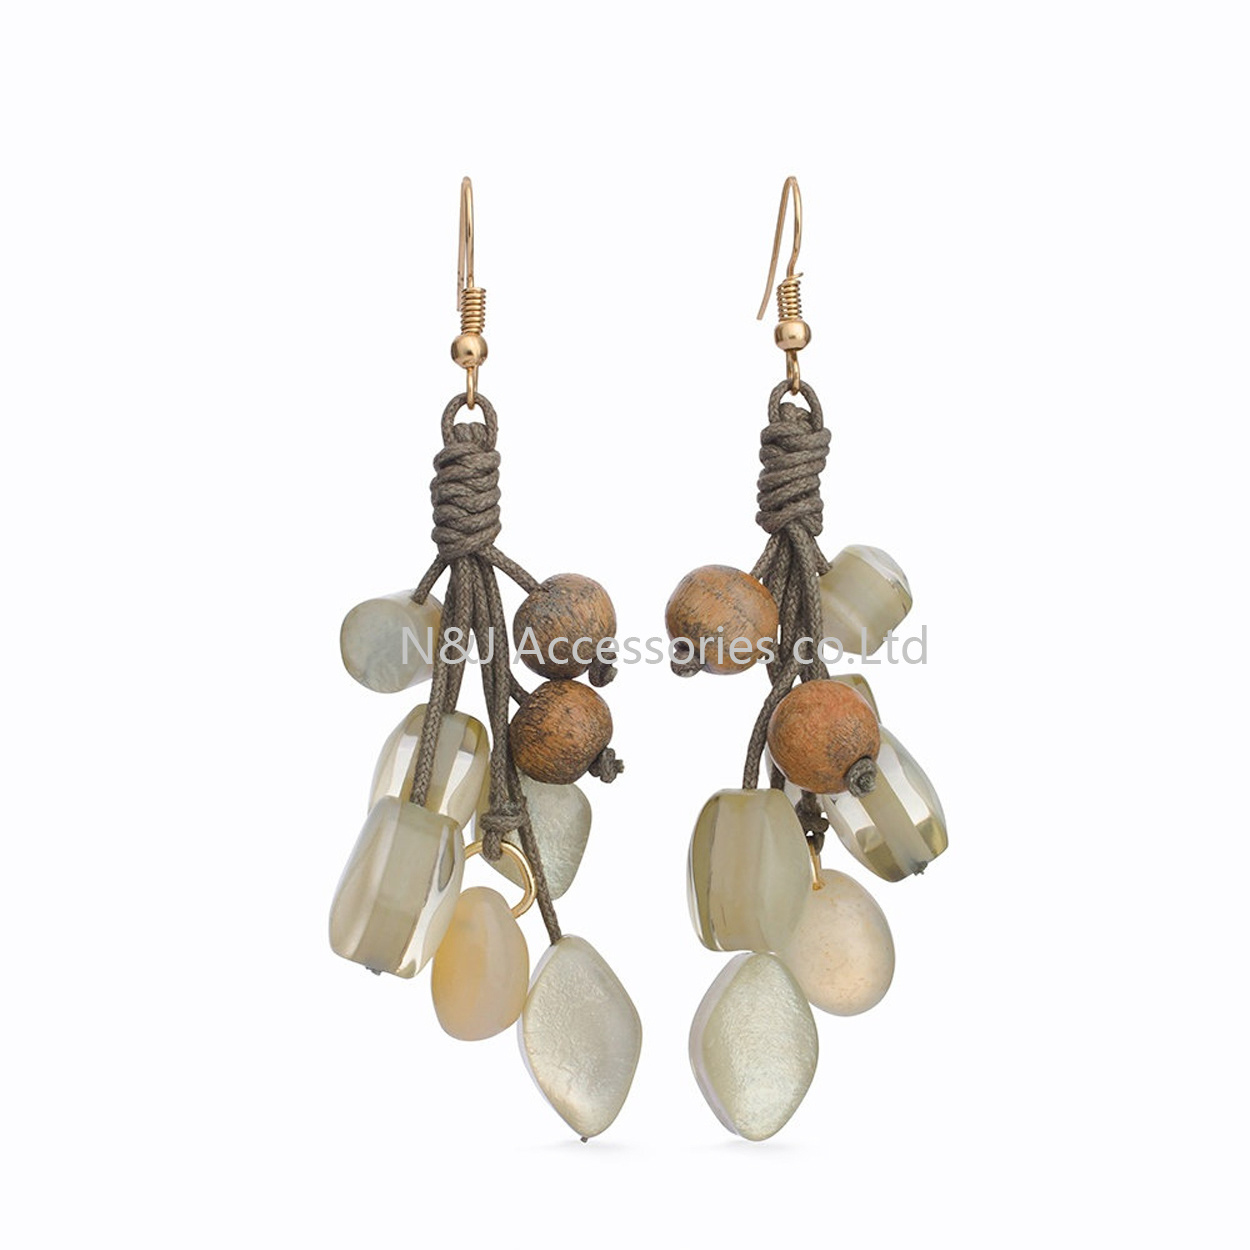 2017 Fashion Handmade Wooden & Acryl Beads Long Drop Earrings for Women Jewelry